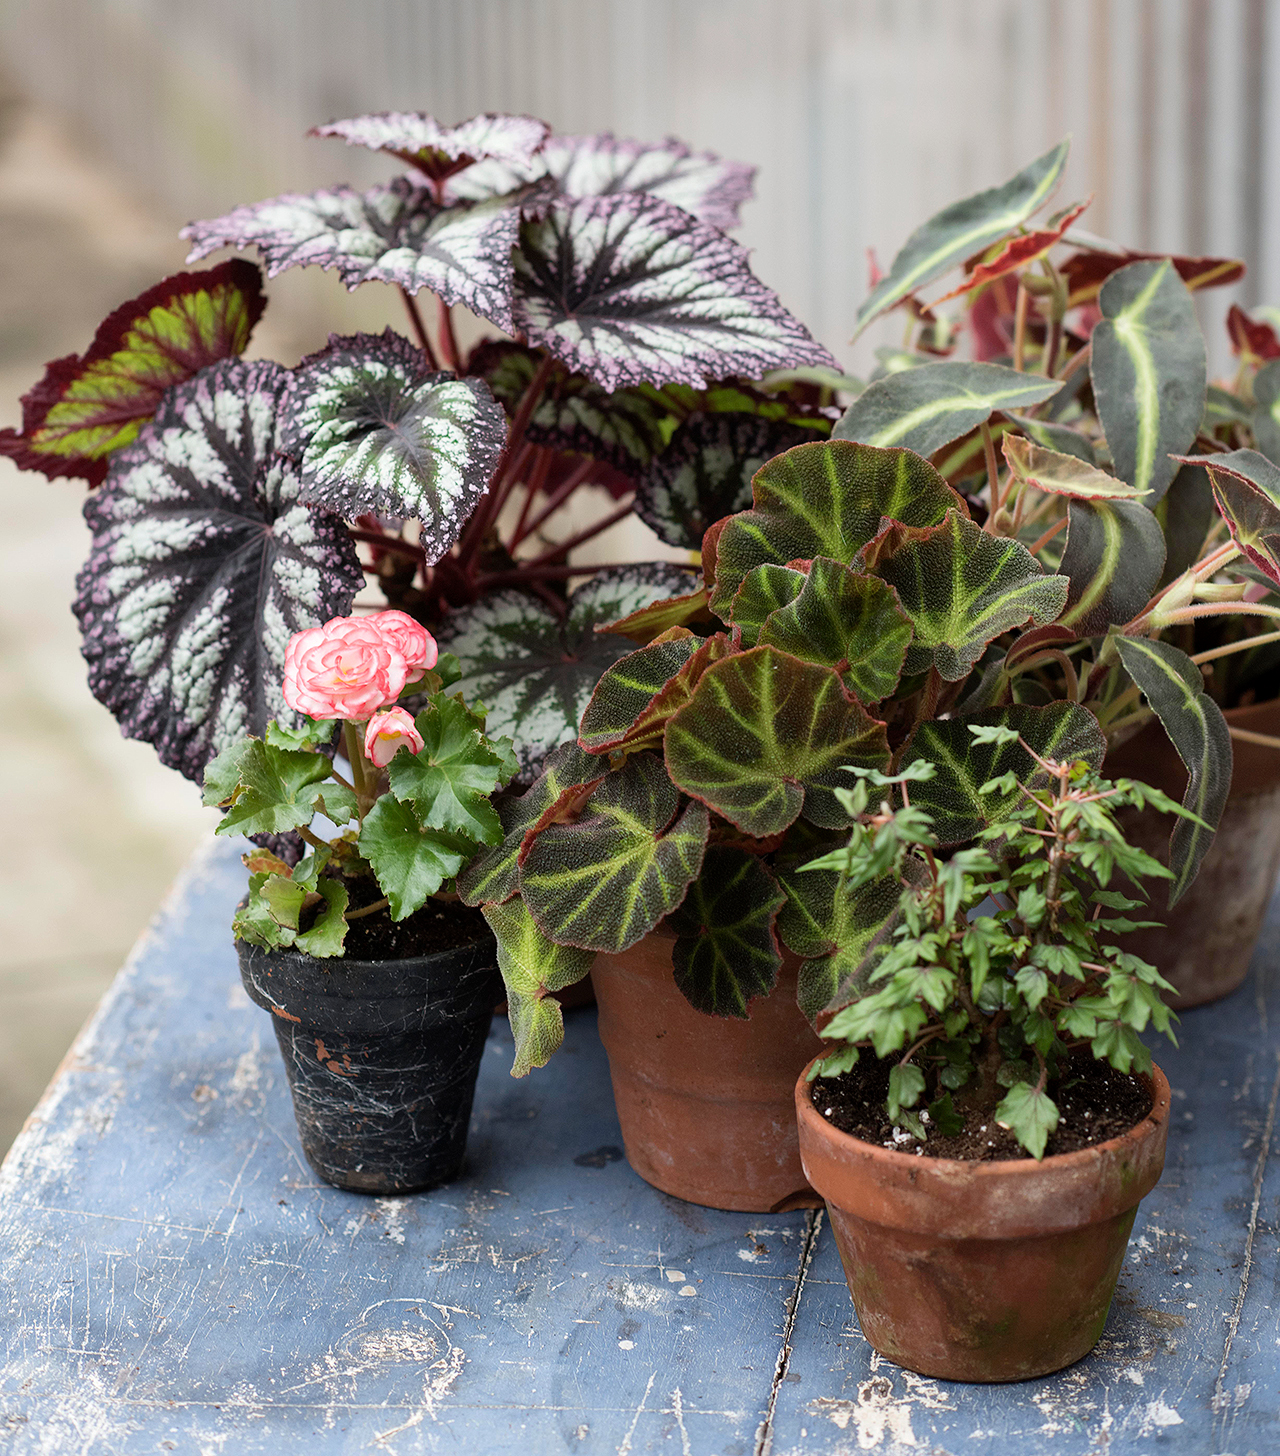 small pots with variety of begonia plants